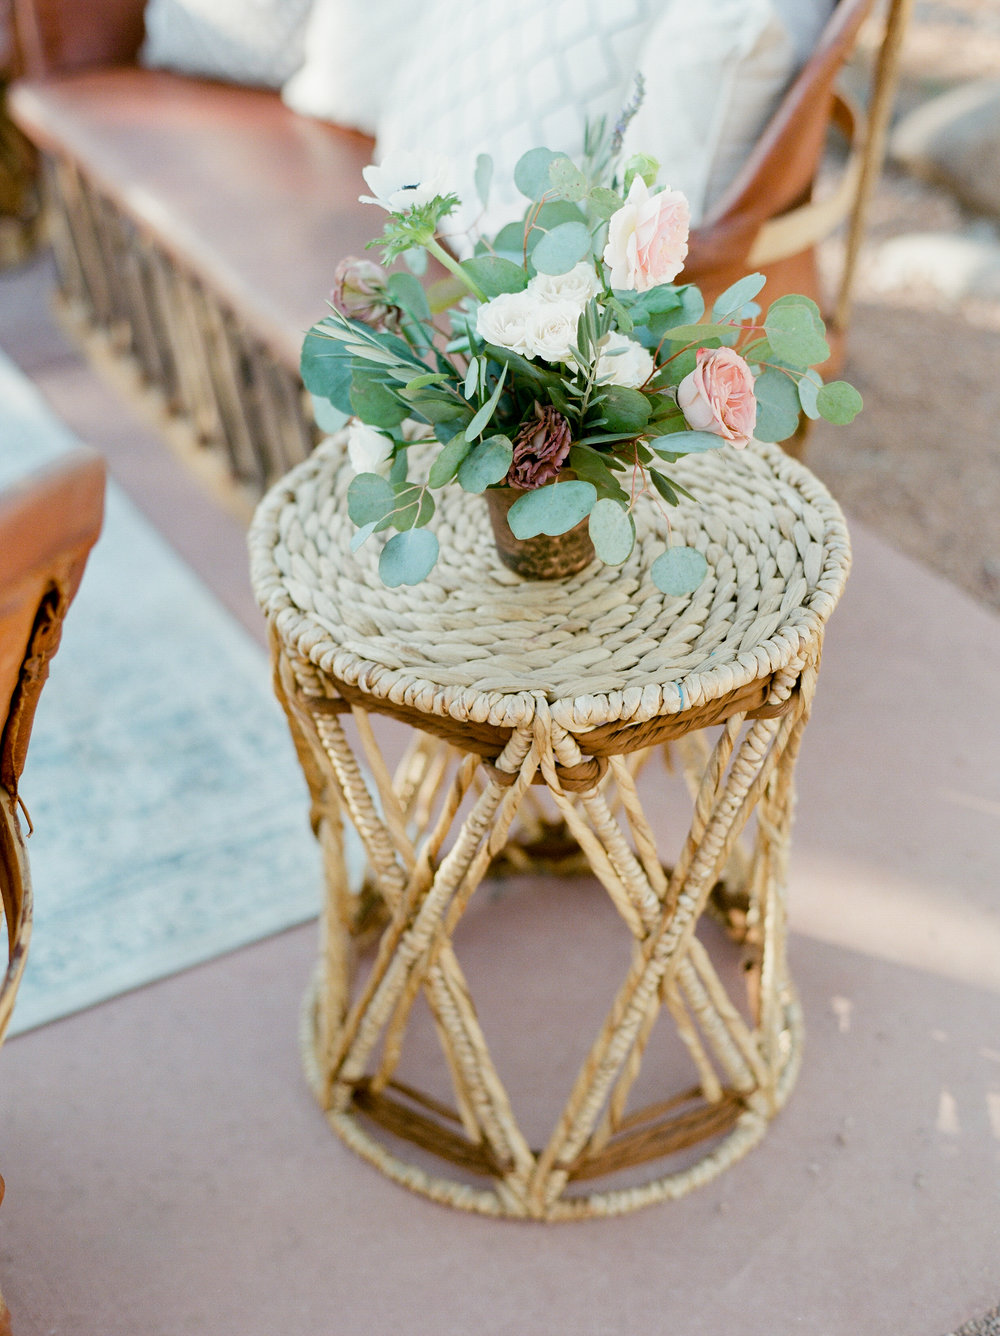 An Intimate Sedona Wedding Nestled in the Arizona Red Rocks  - Tremaine Ranch - AZ Arizona Wedding & Event, Vintage, Furniture, Tableware, & Specialty Rentals in Phoenix, Tucson, Flagstaff, Sedona, Tempe, Chandler, Mesa, Gilbert, Prescott, Payson 562.jpg